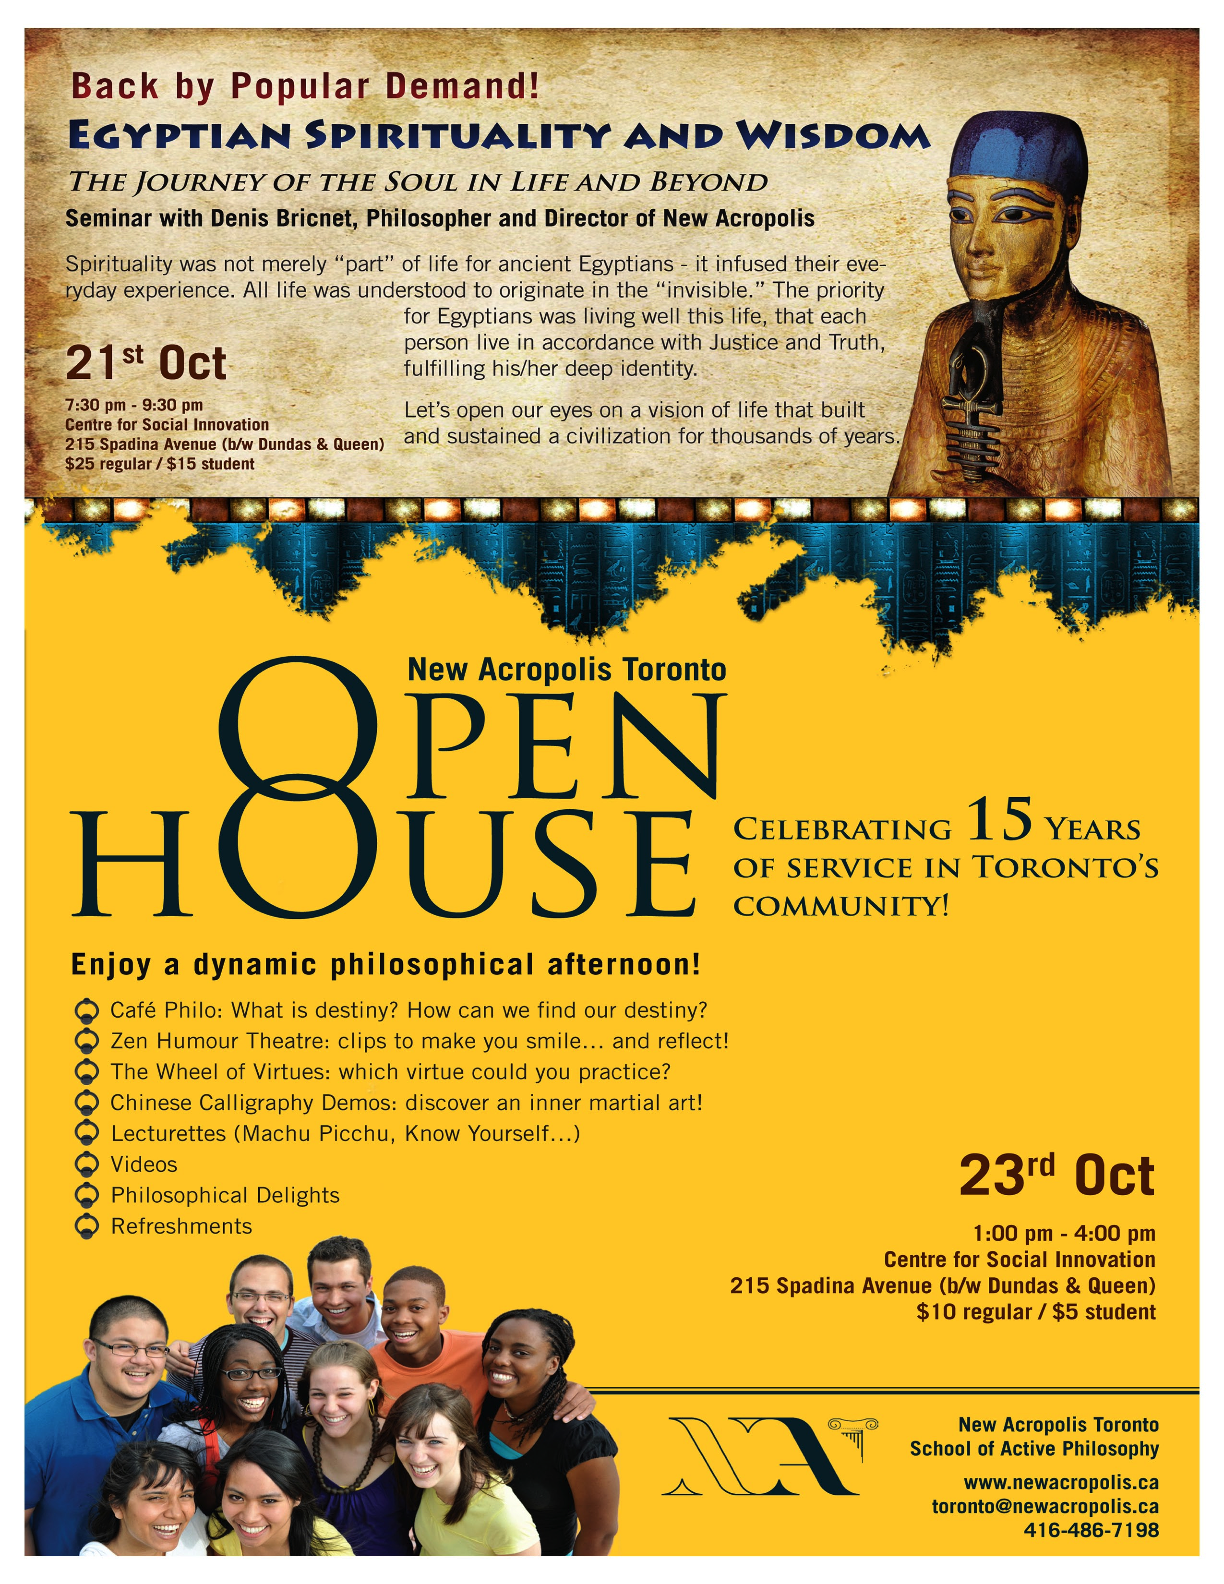 NA_Egypt_Open_House_Oct2010.png